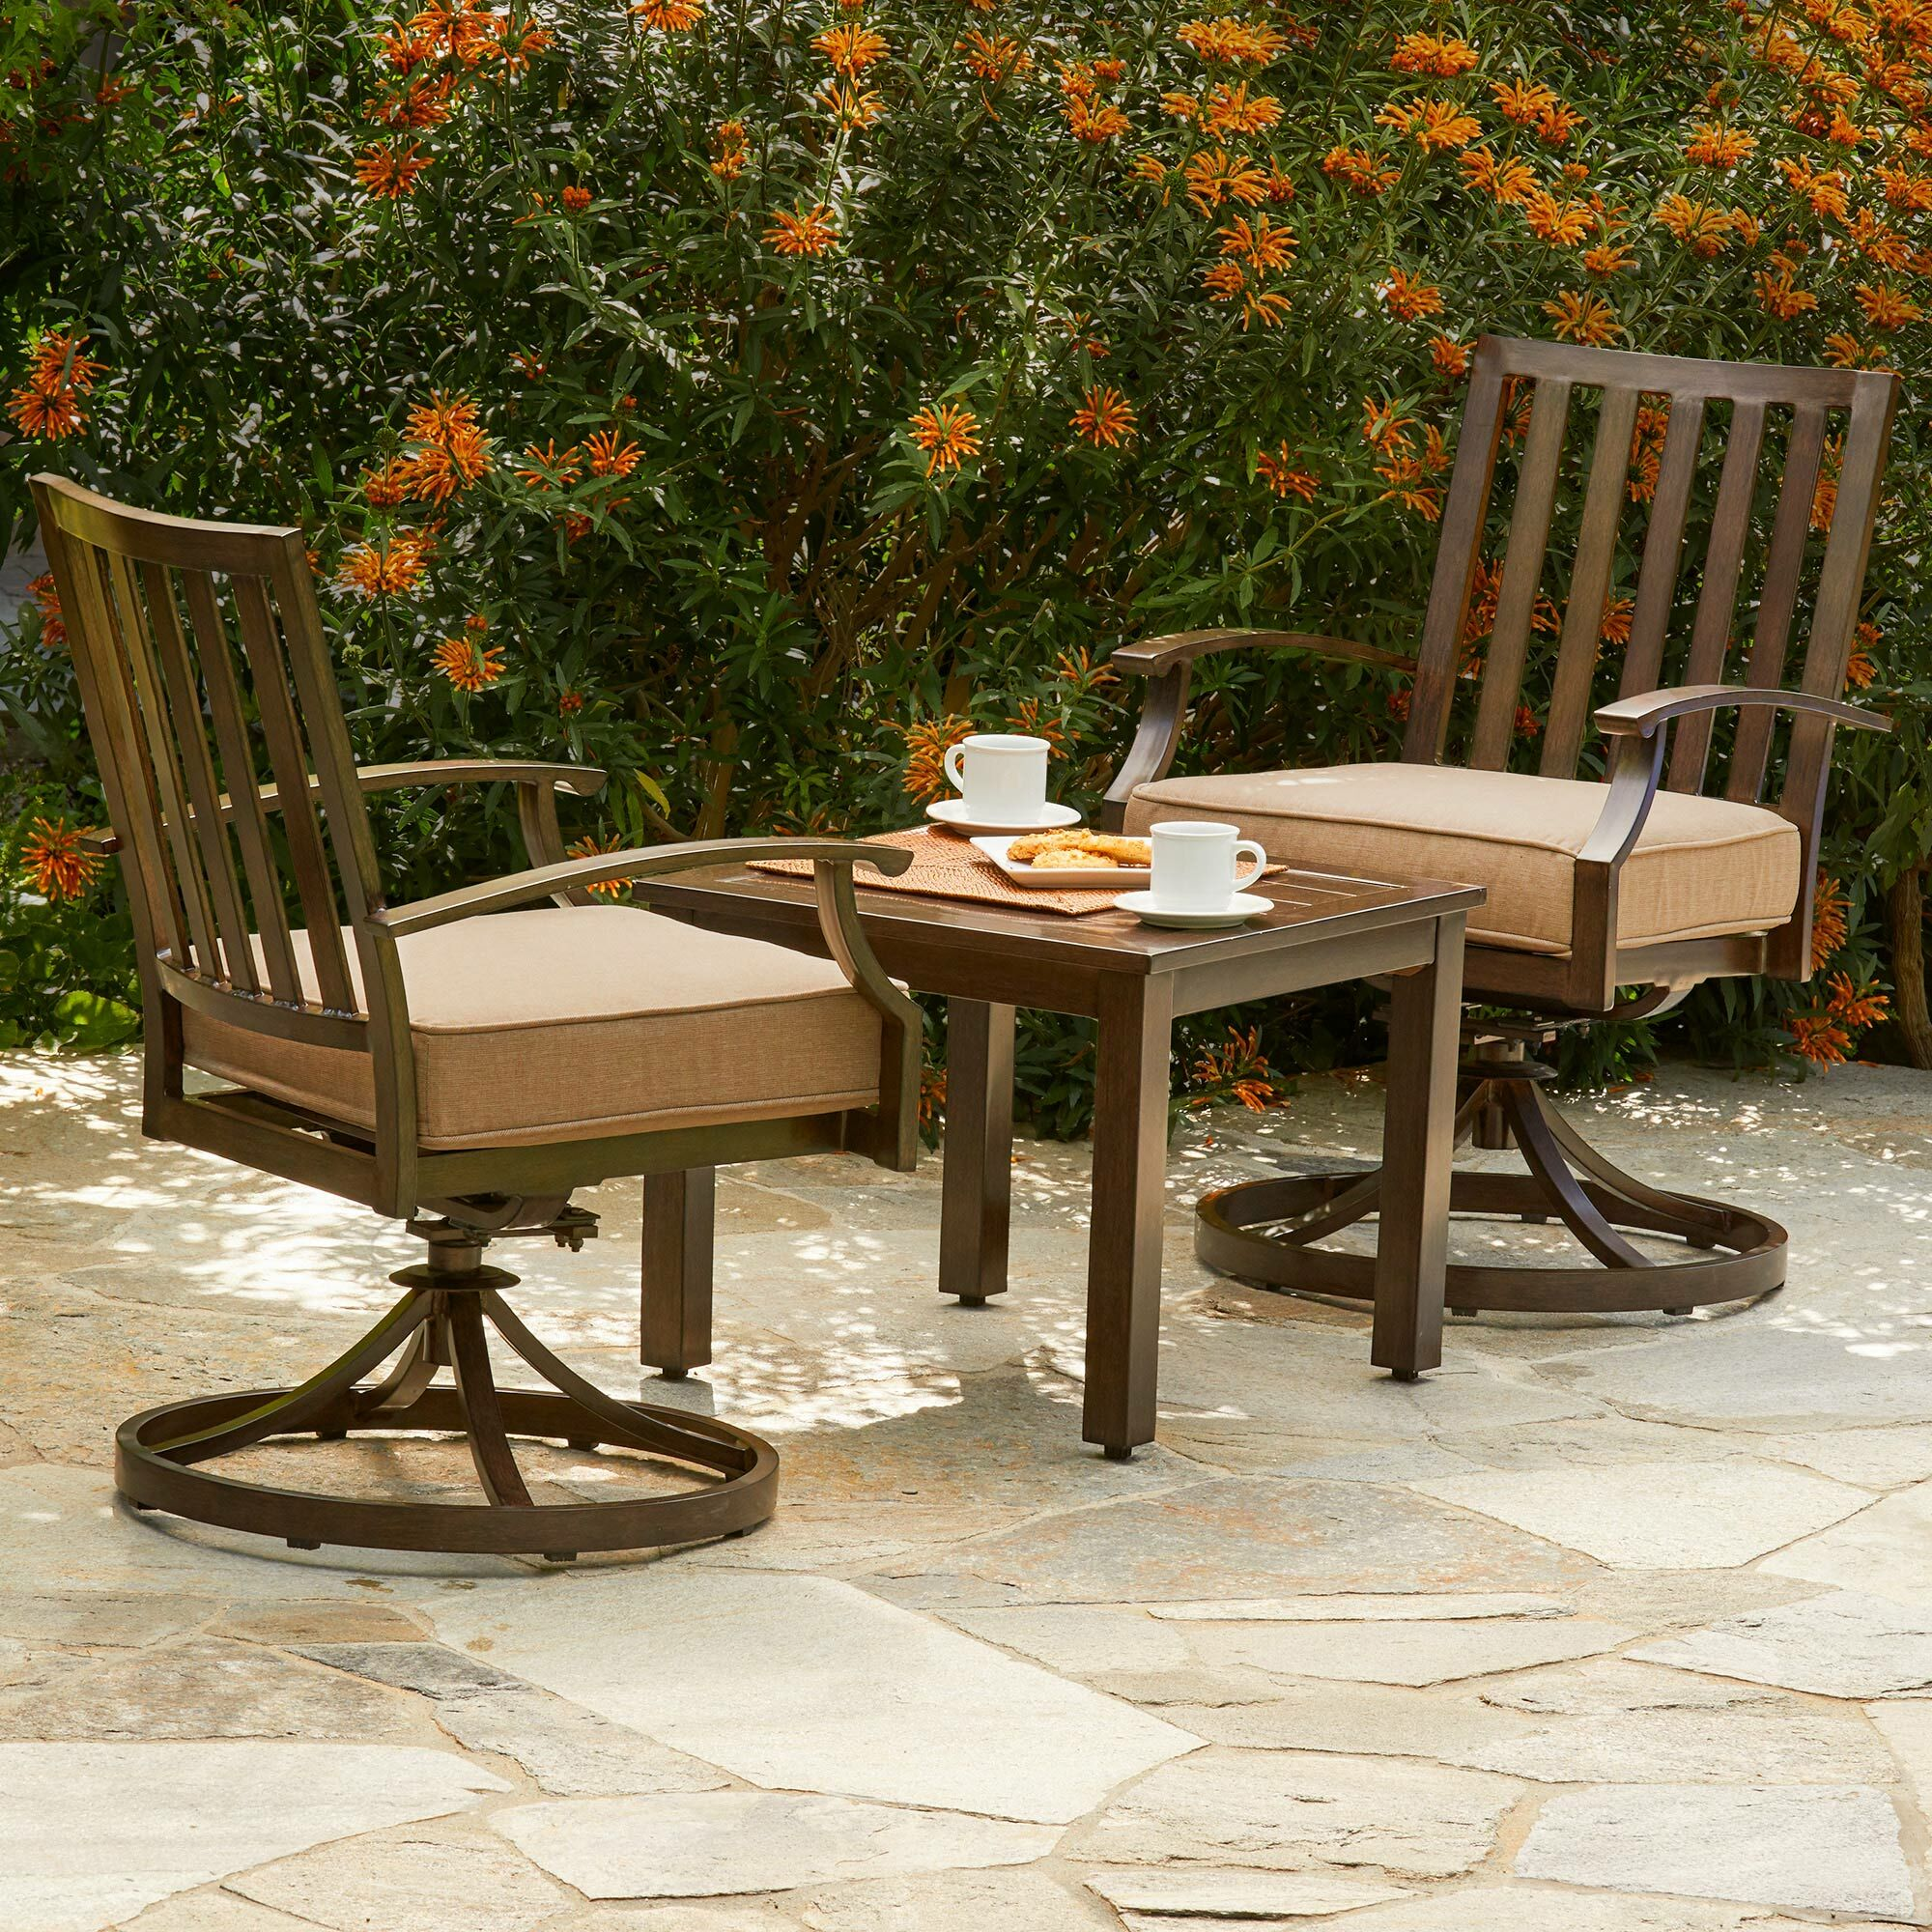 Yandel Bridgeport 3 Piece Bistro Set with Cushions Cushion Color: Tan